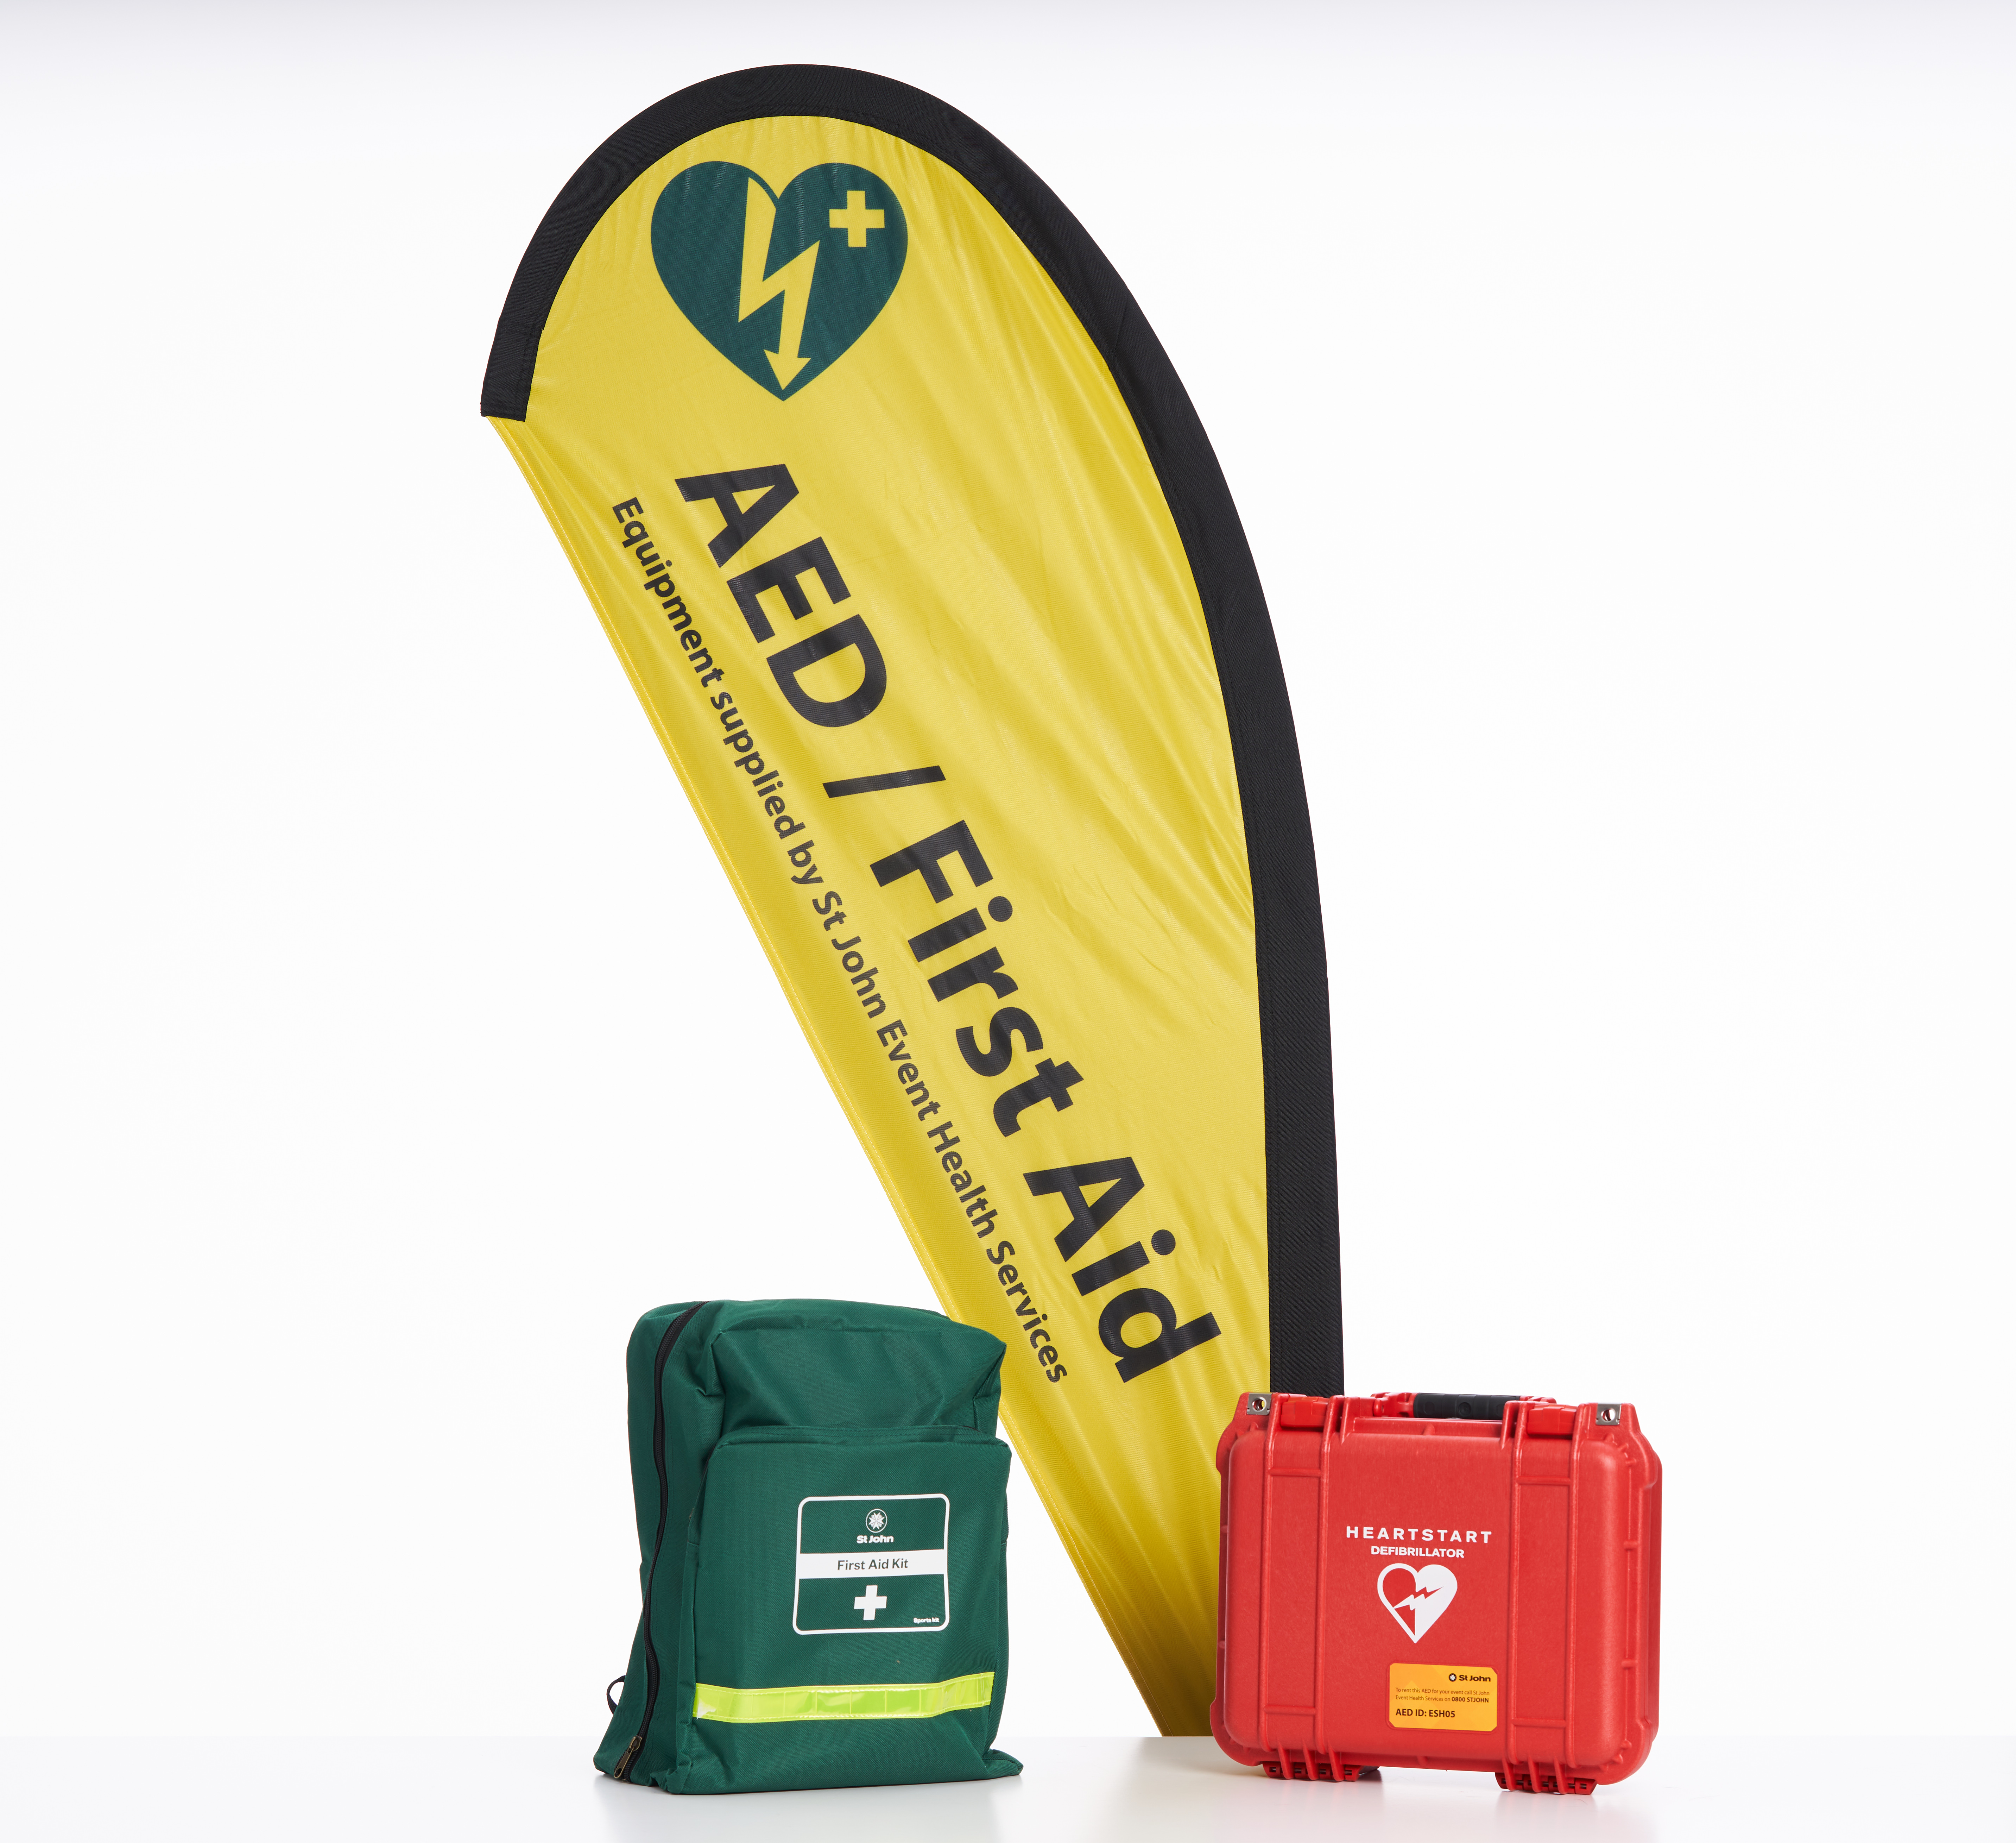 AED rental options from St John